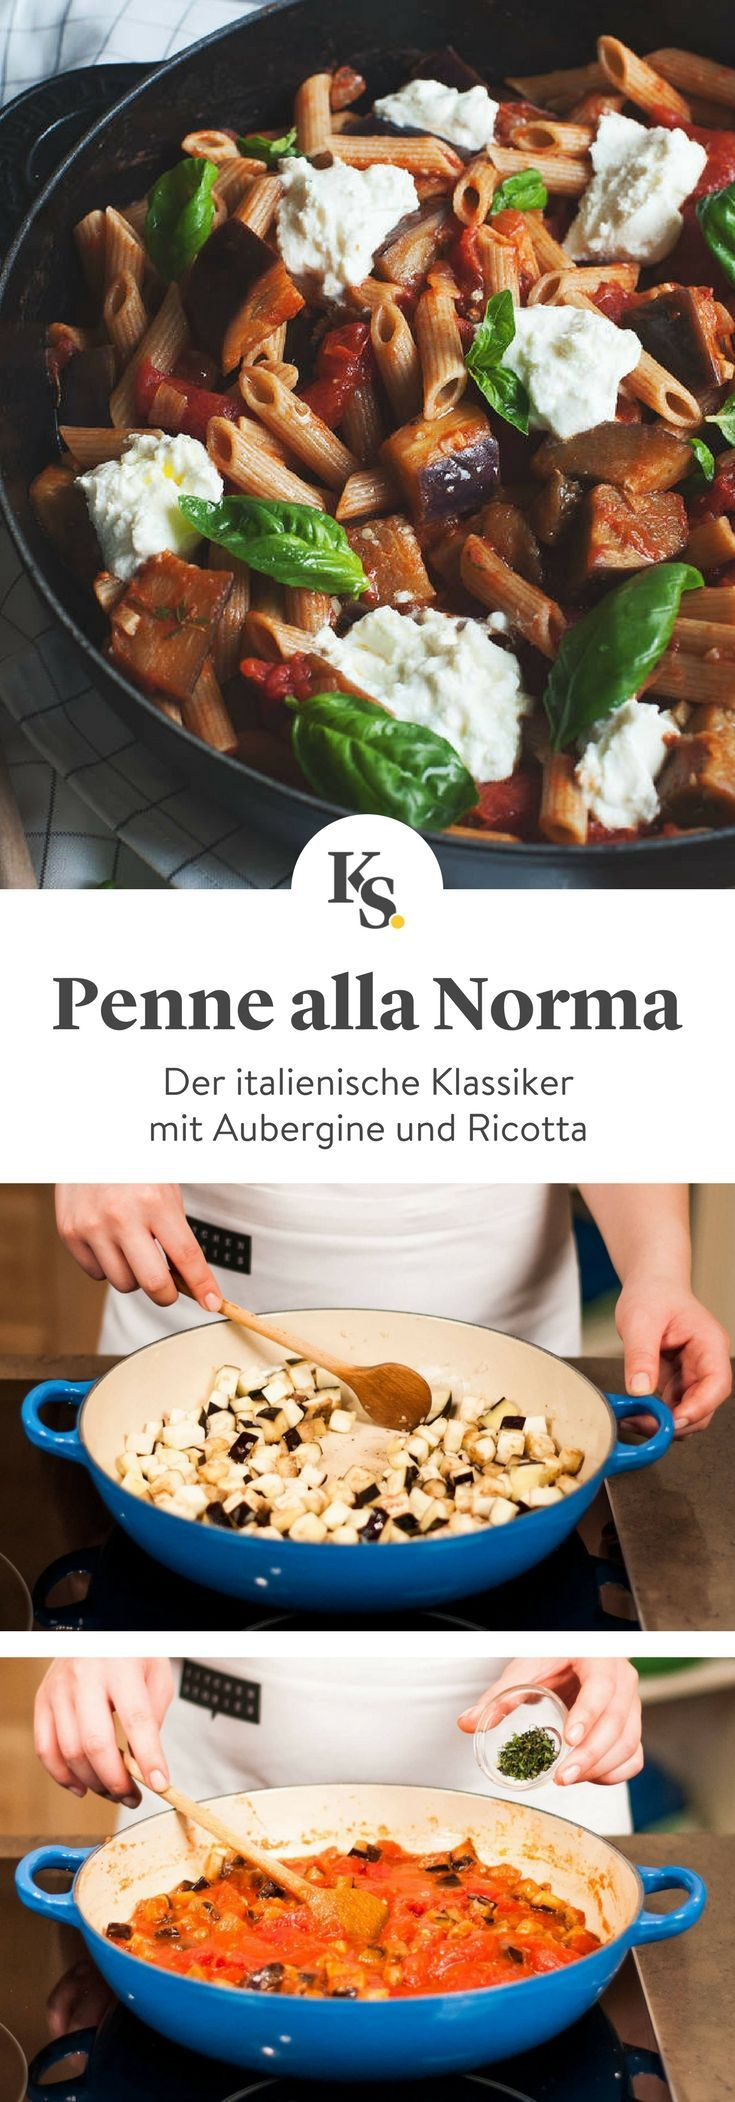 Photo of Penne alla Norma   Recipe   Kitchen stories